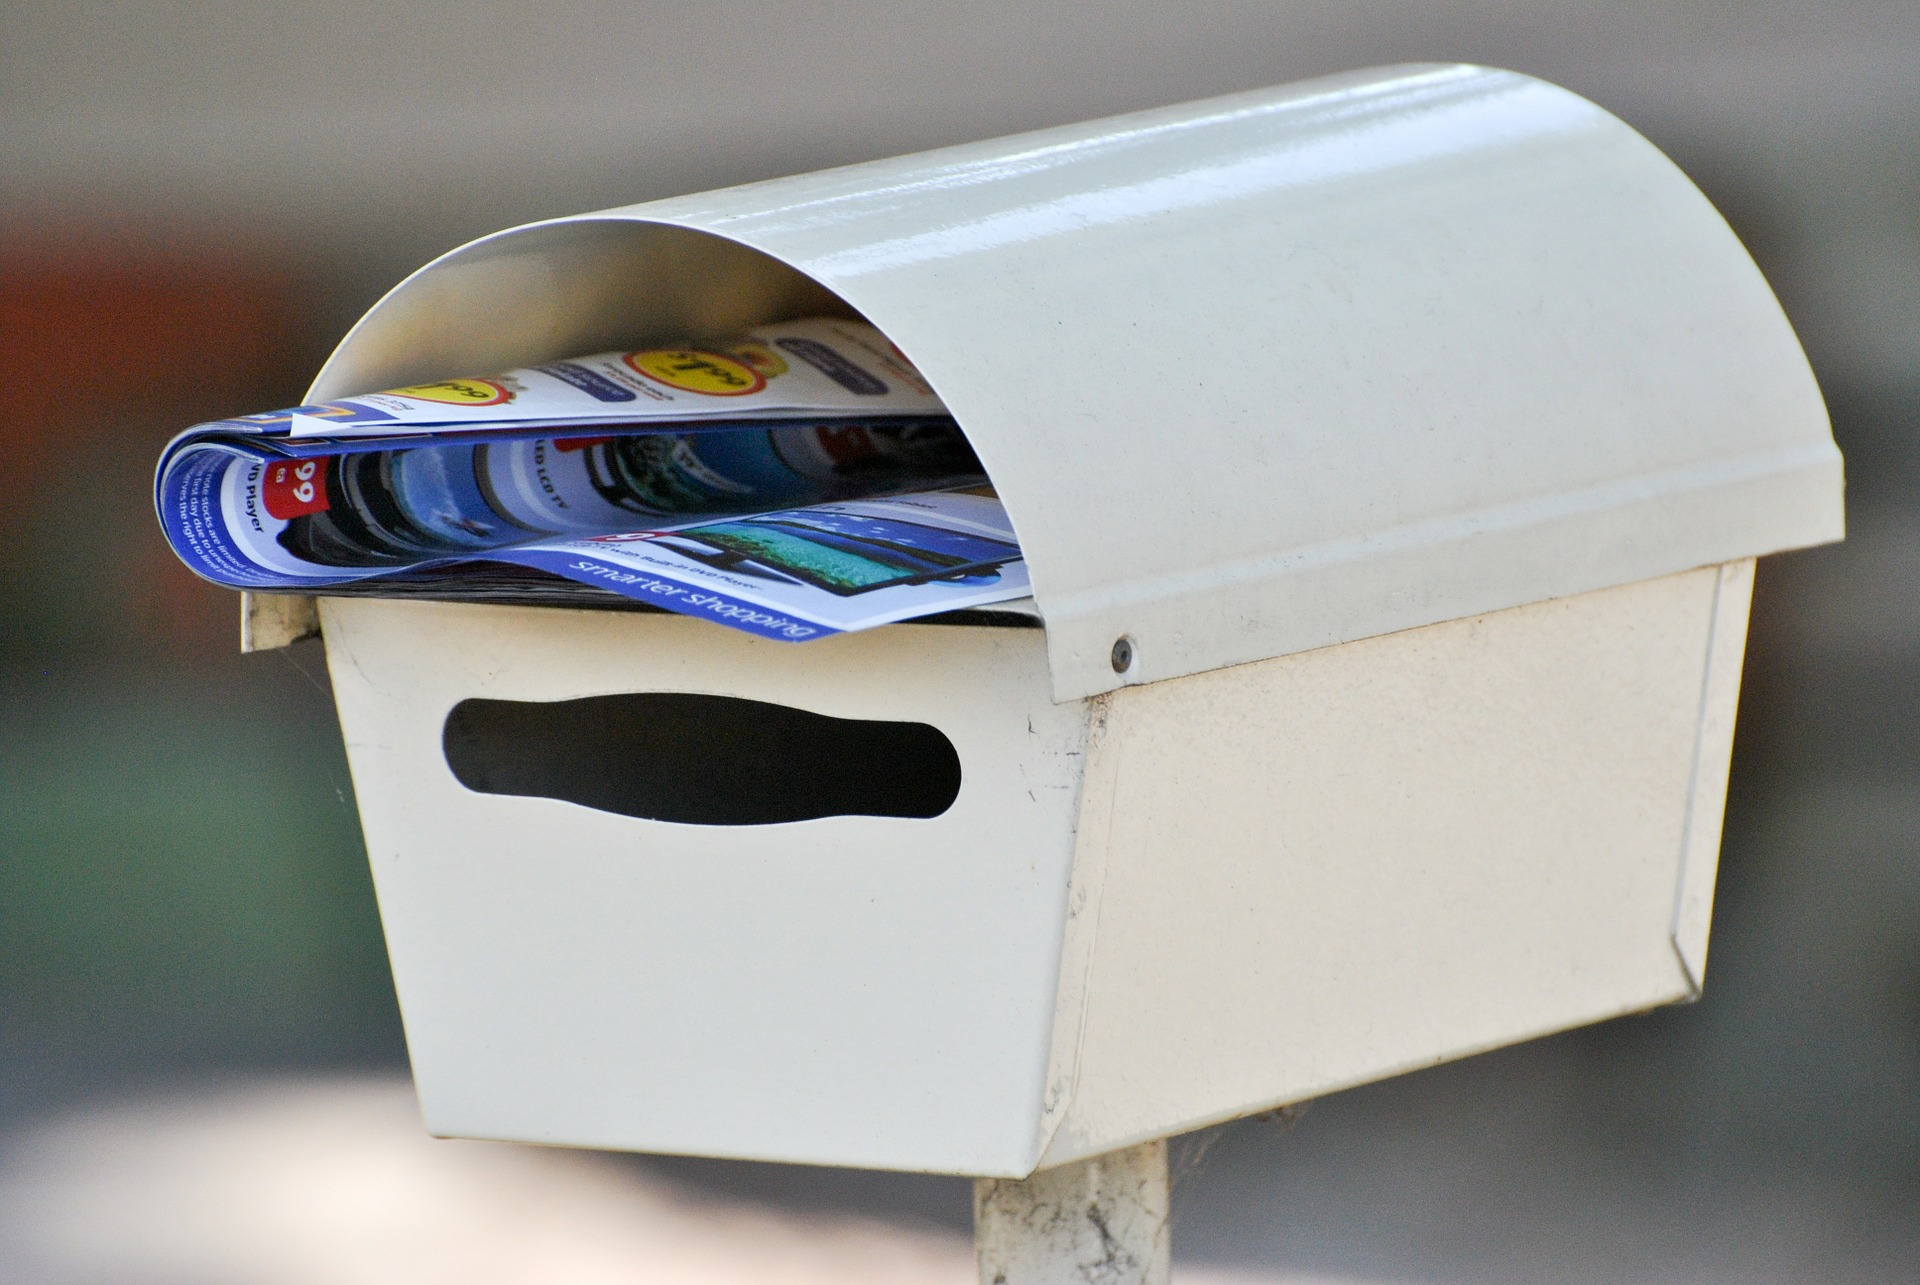 Is snail mail the way of the future?